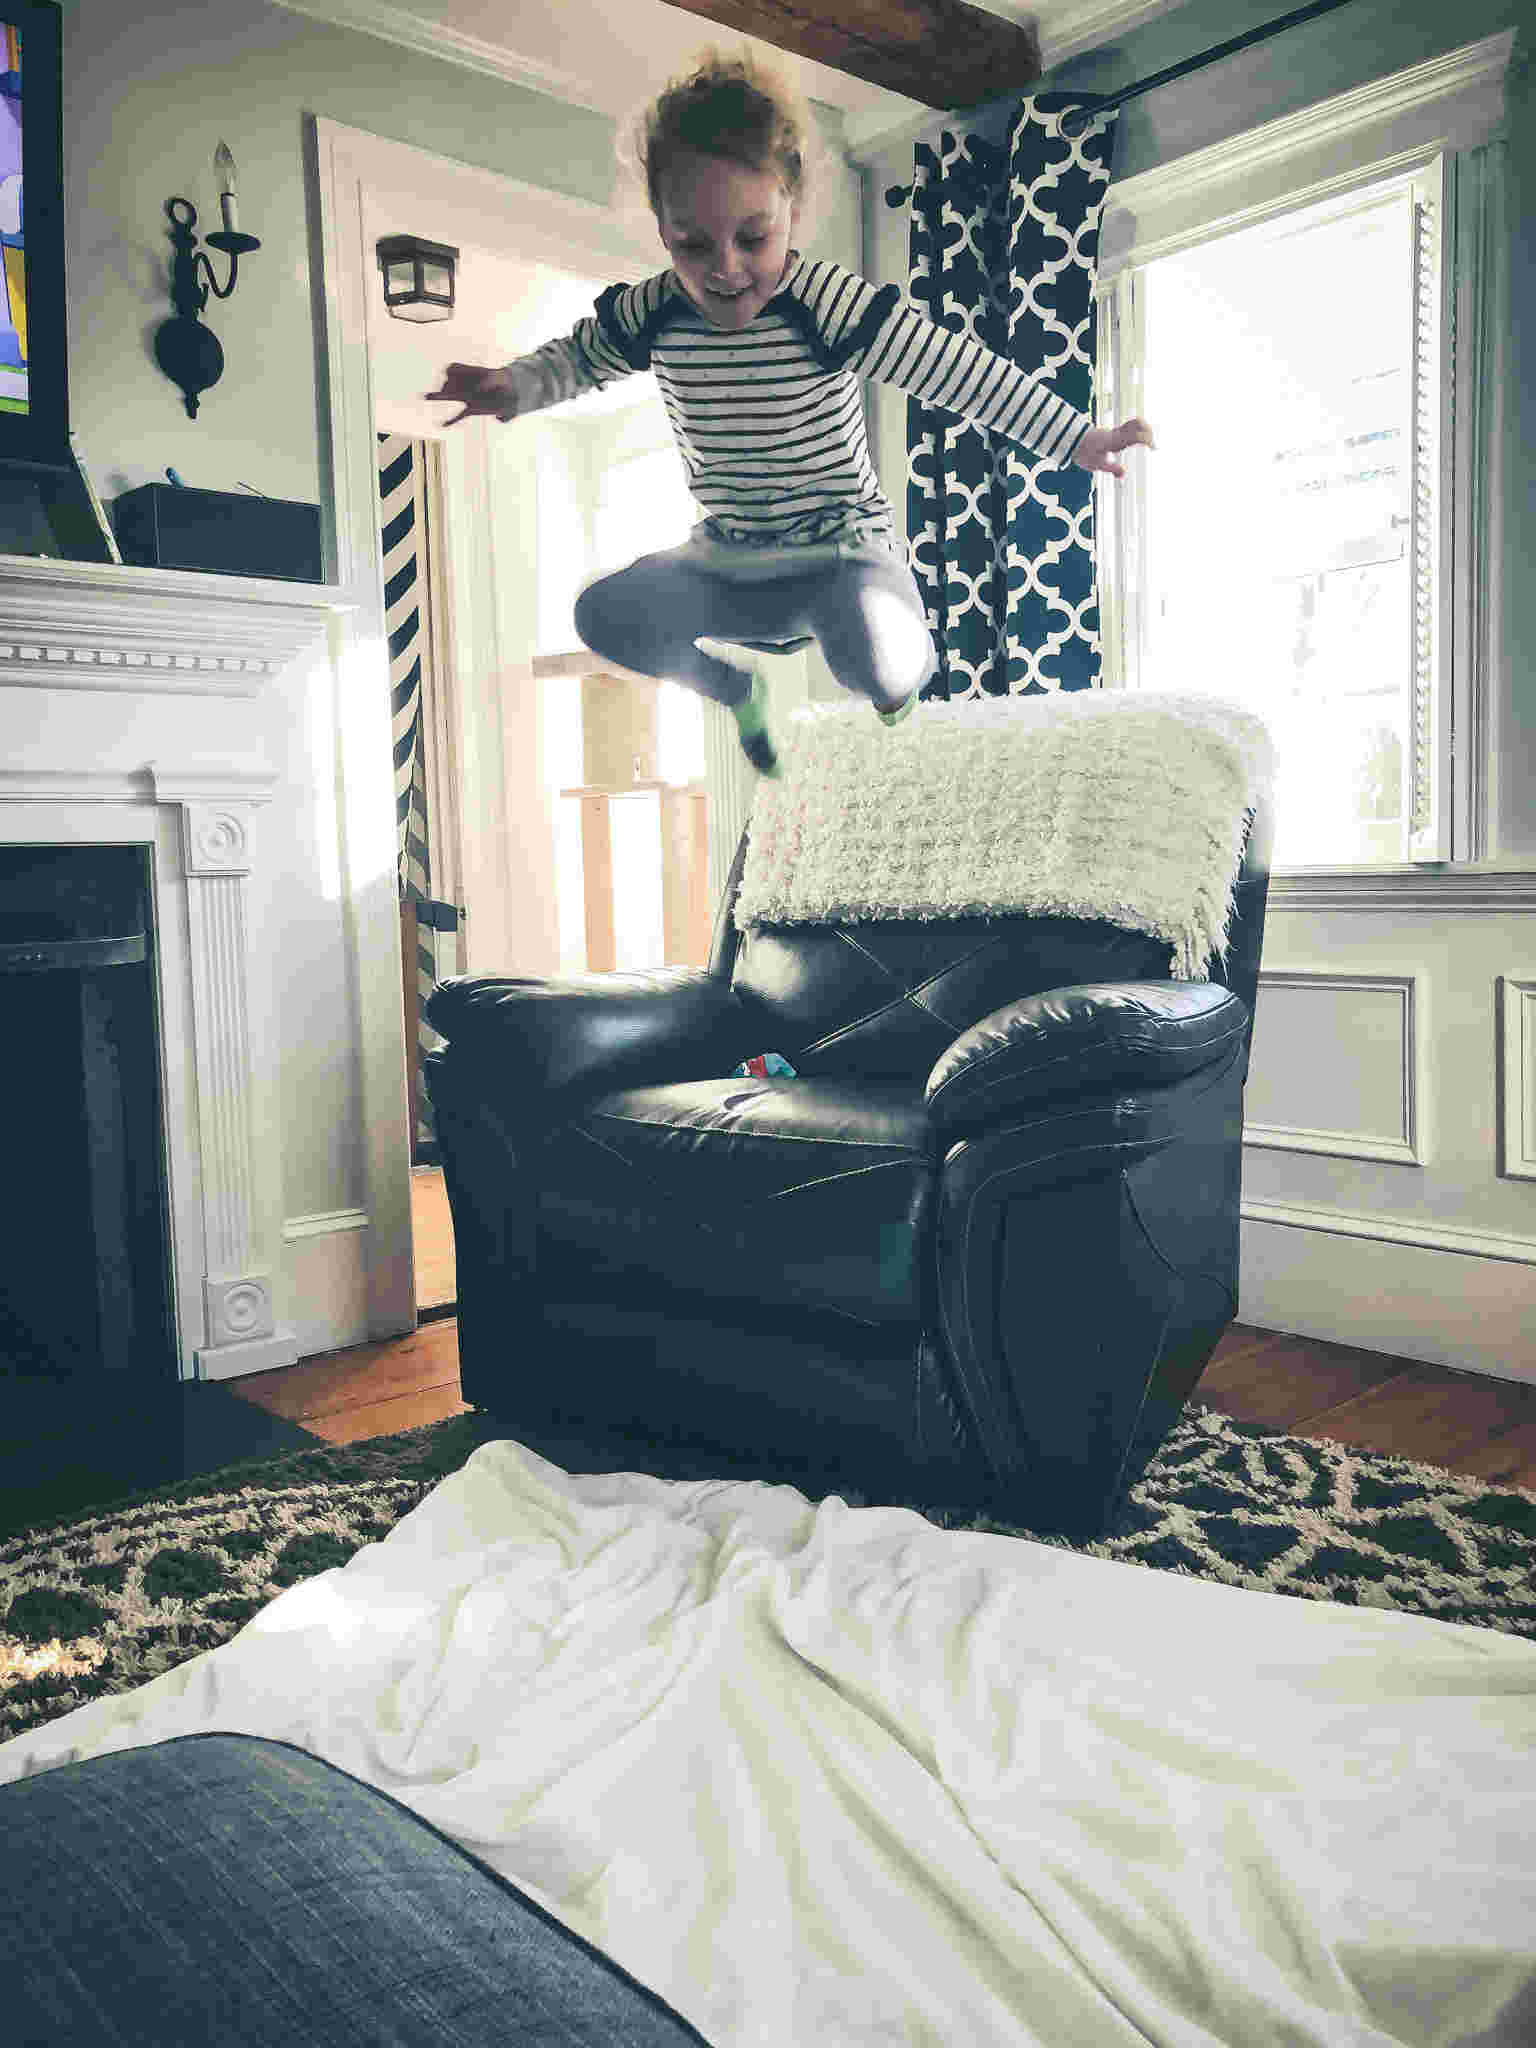 Jumping off the furniture